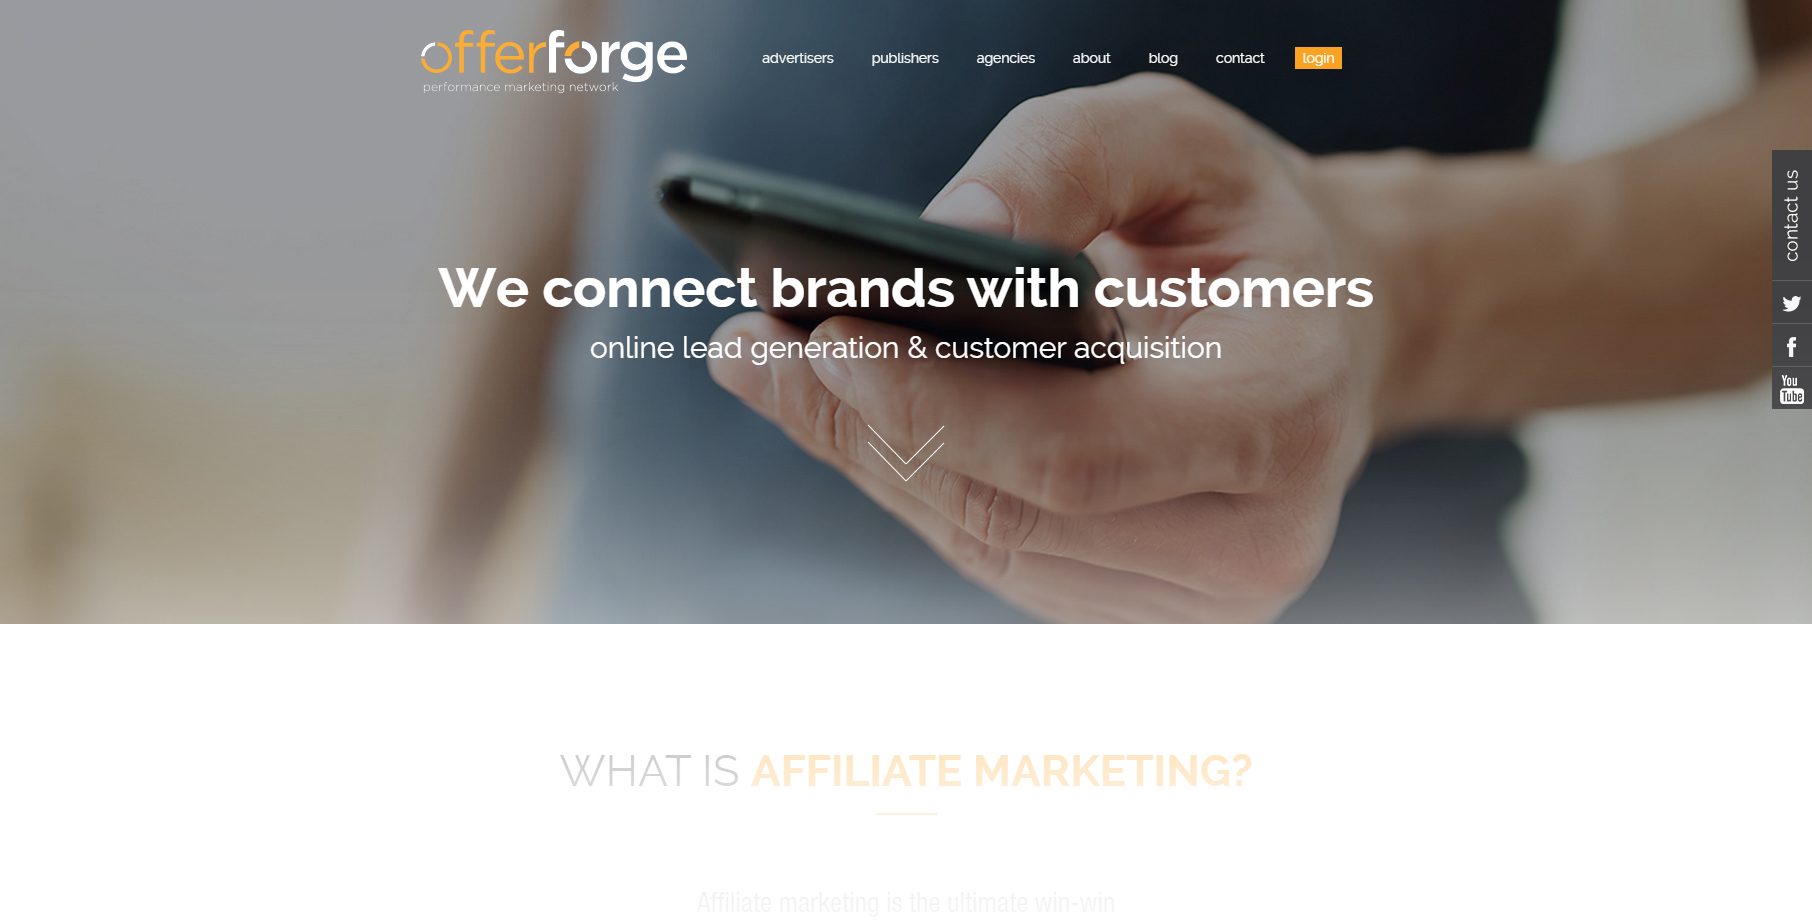 OfferForge-Performance-Marketing-Affiliate-Network.-Connecting-Brands-with-Customecsdsdsrs-through-Lead-Generation---Customer-Acquisition